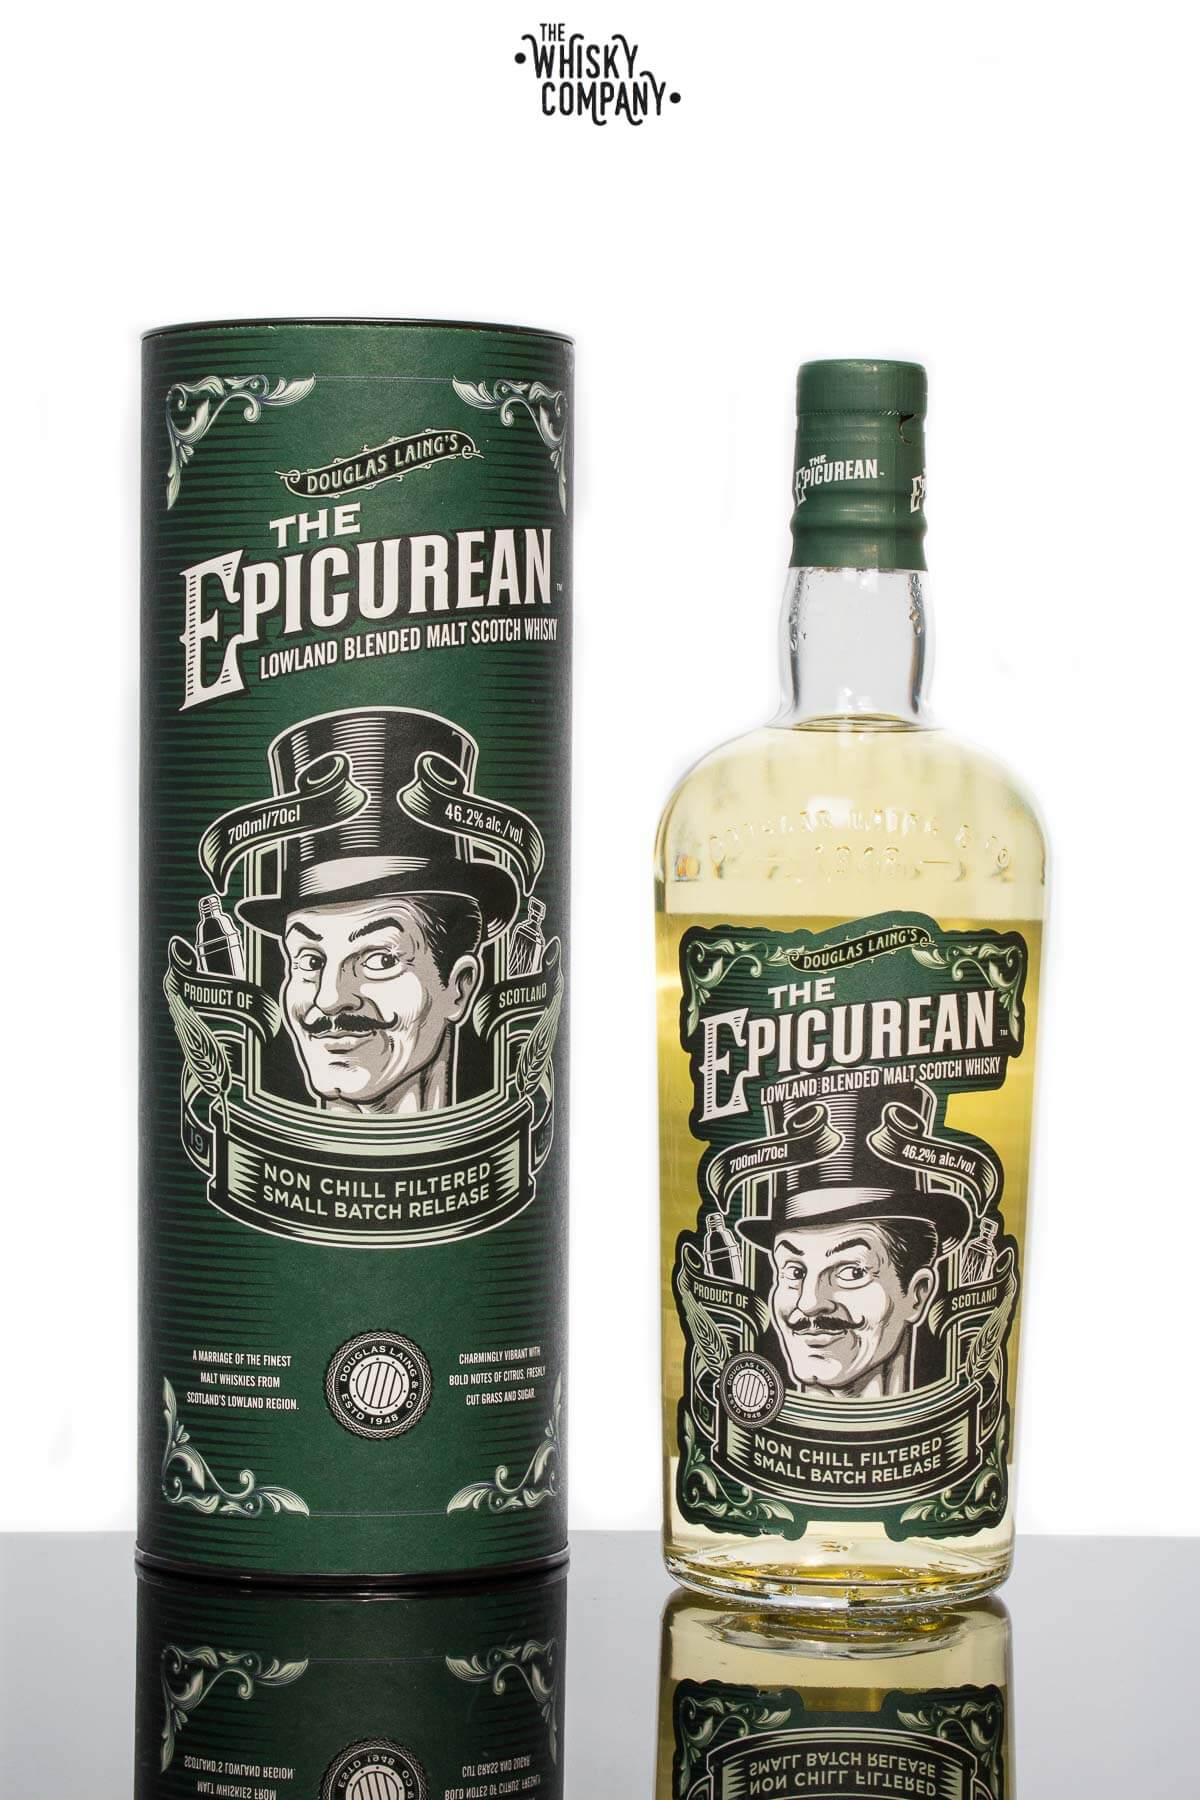 Douglas Laing's The Epicurean Lowland Blended Malt Scotch Whisky